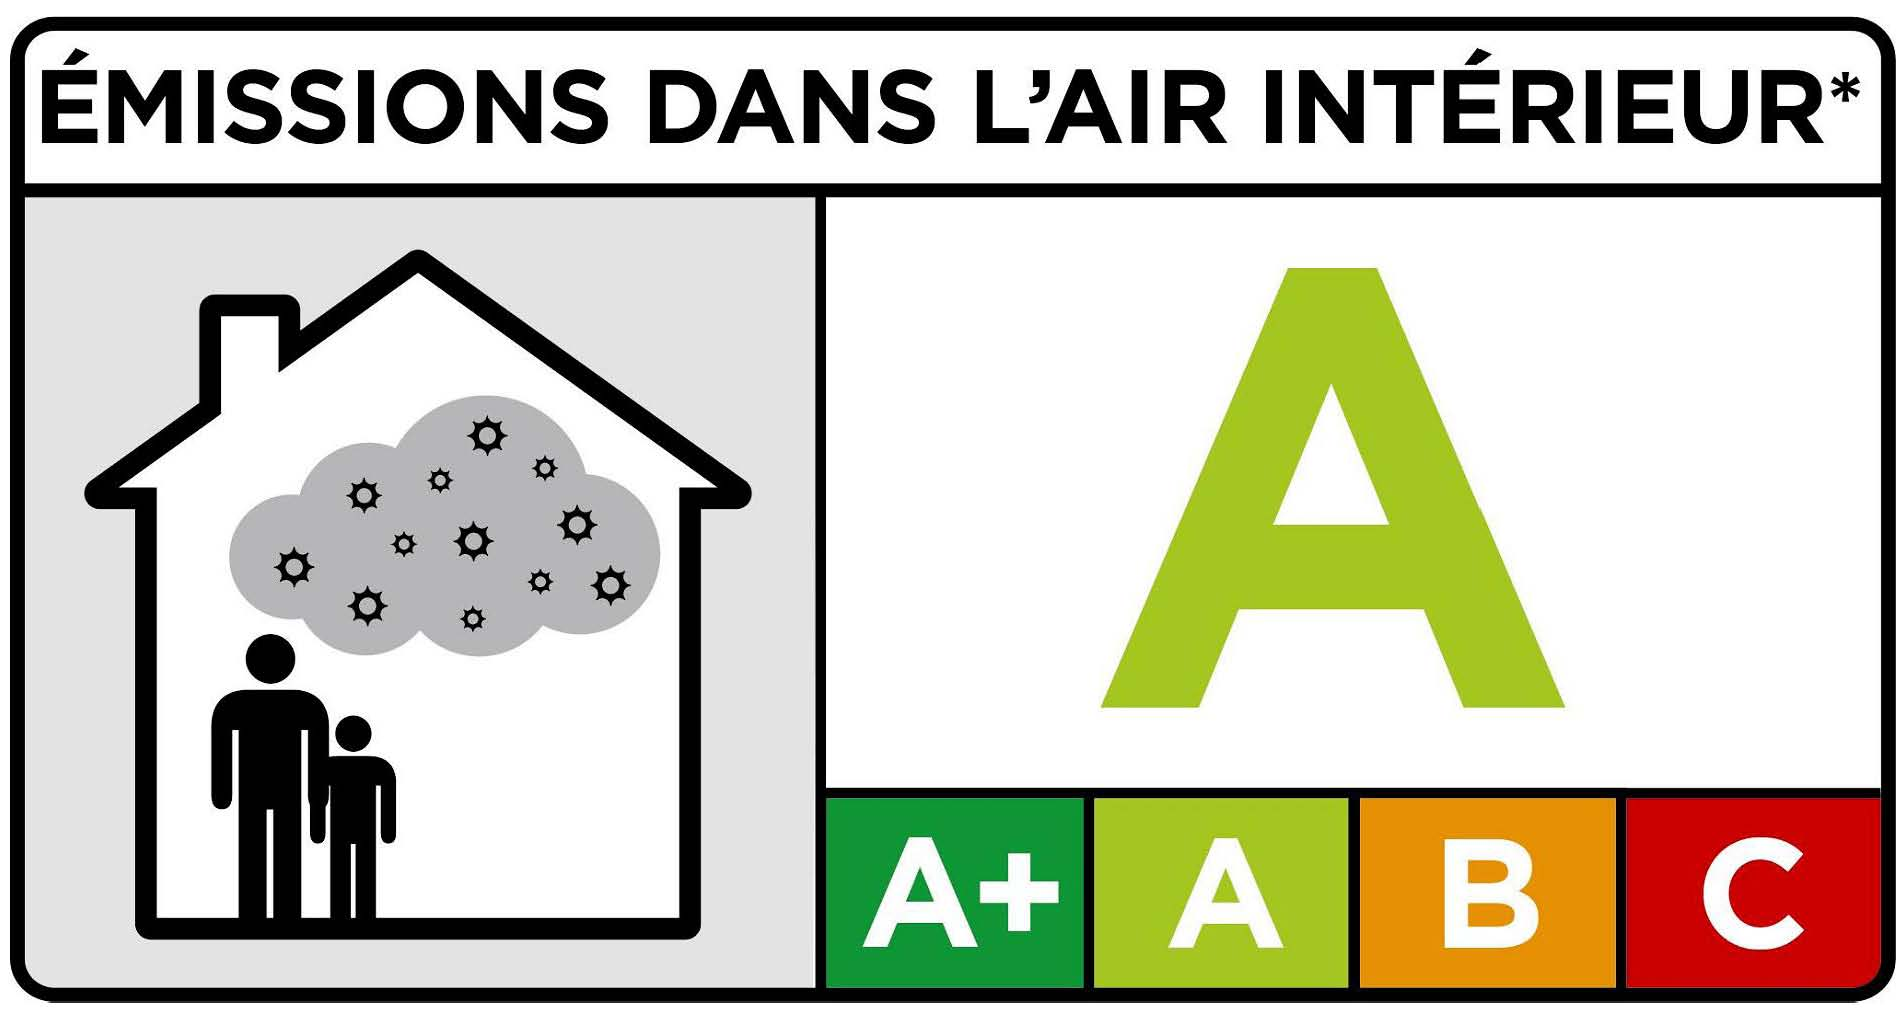 La qualit de l 39 air int rieur en question for Mesure qualite air interieur